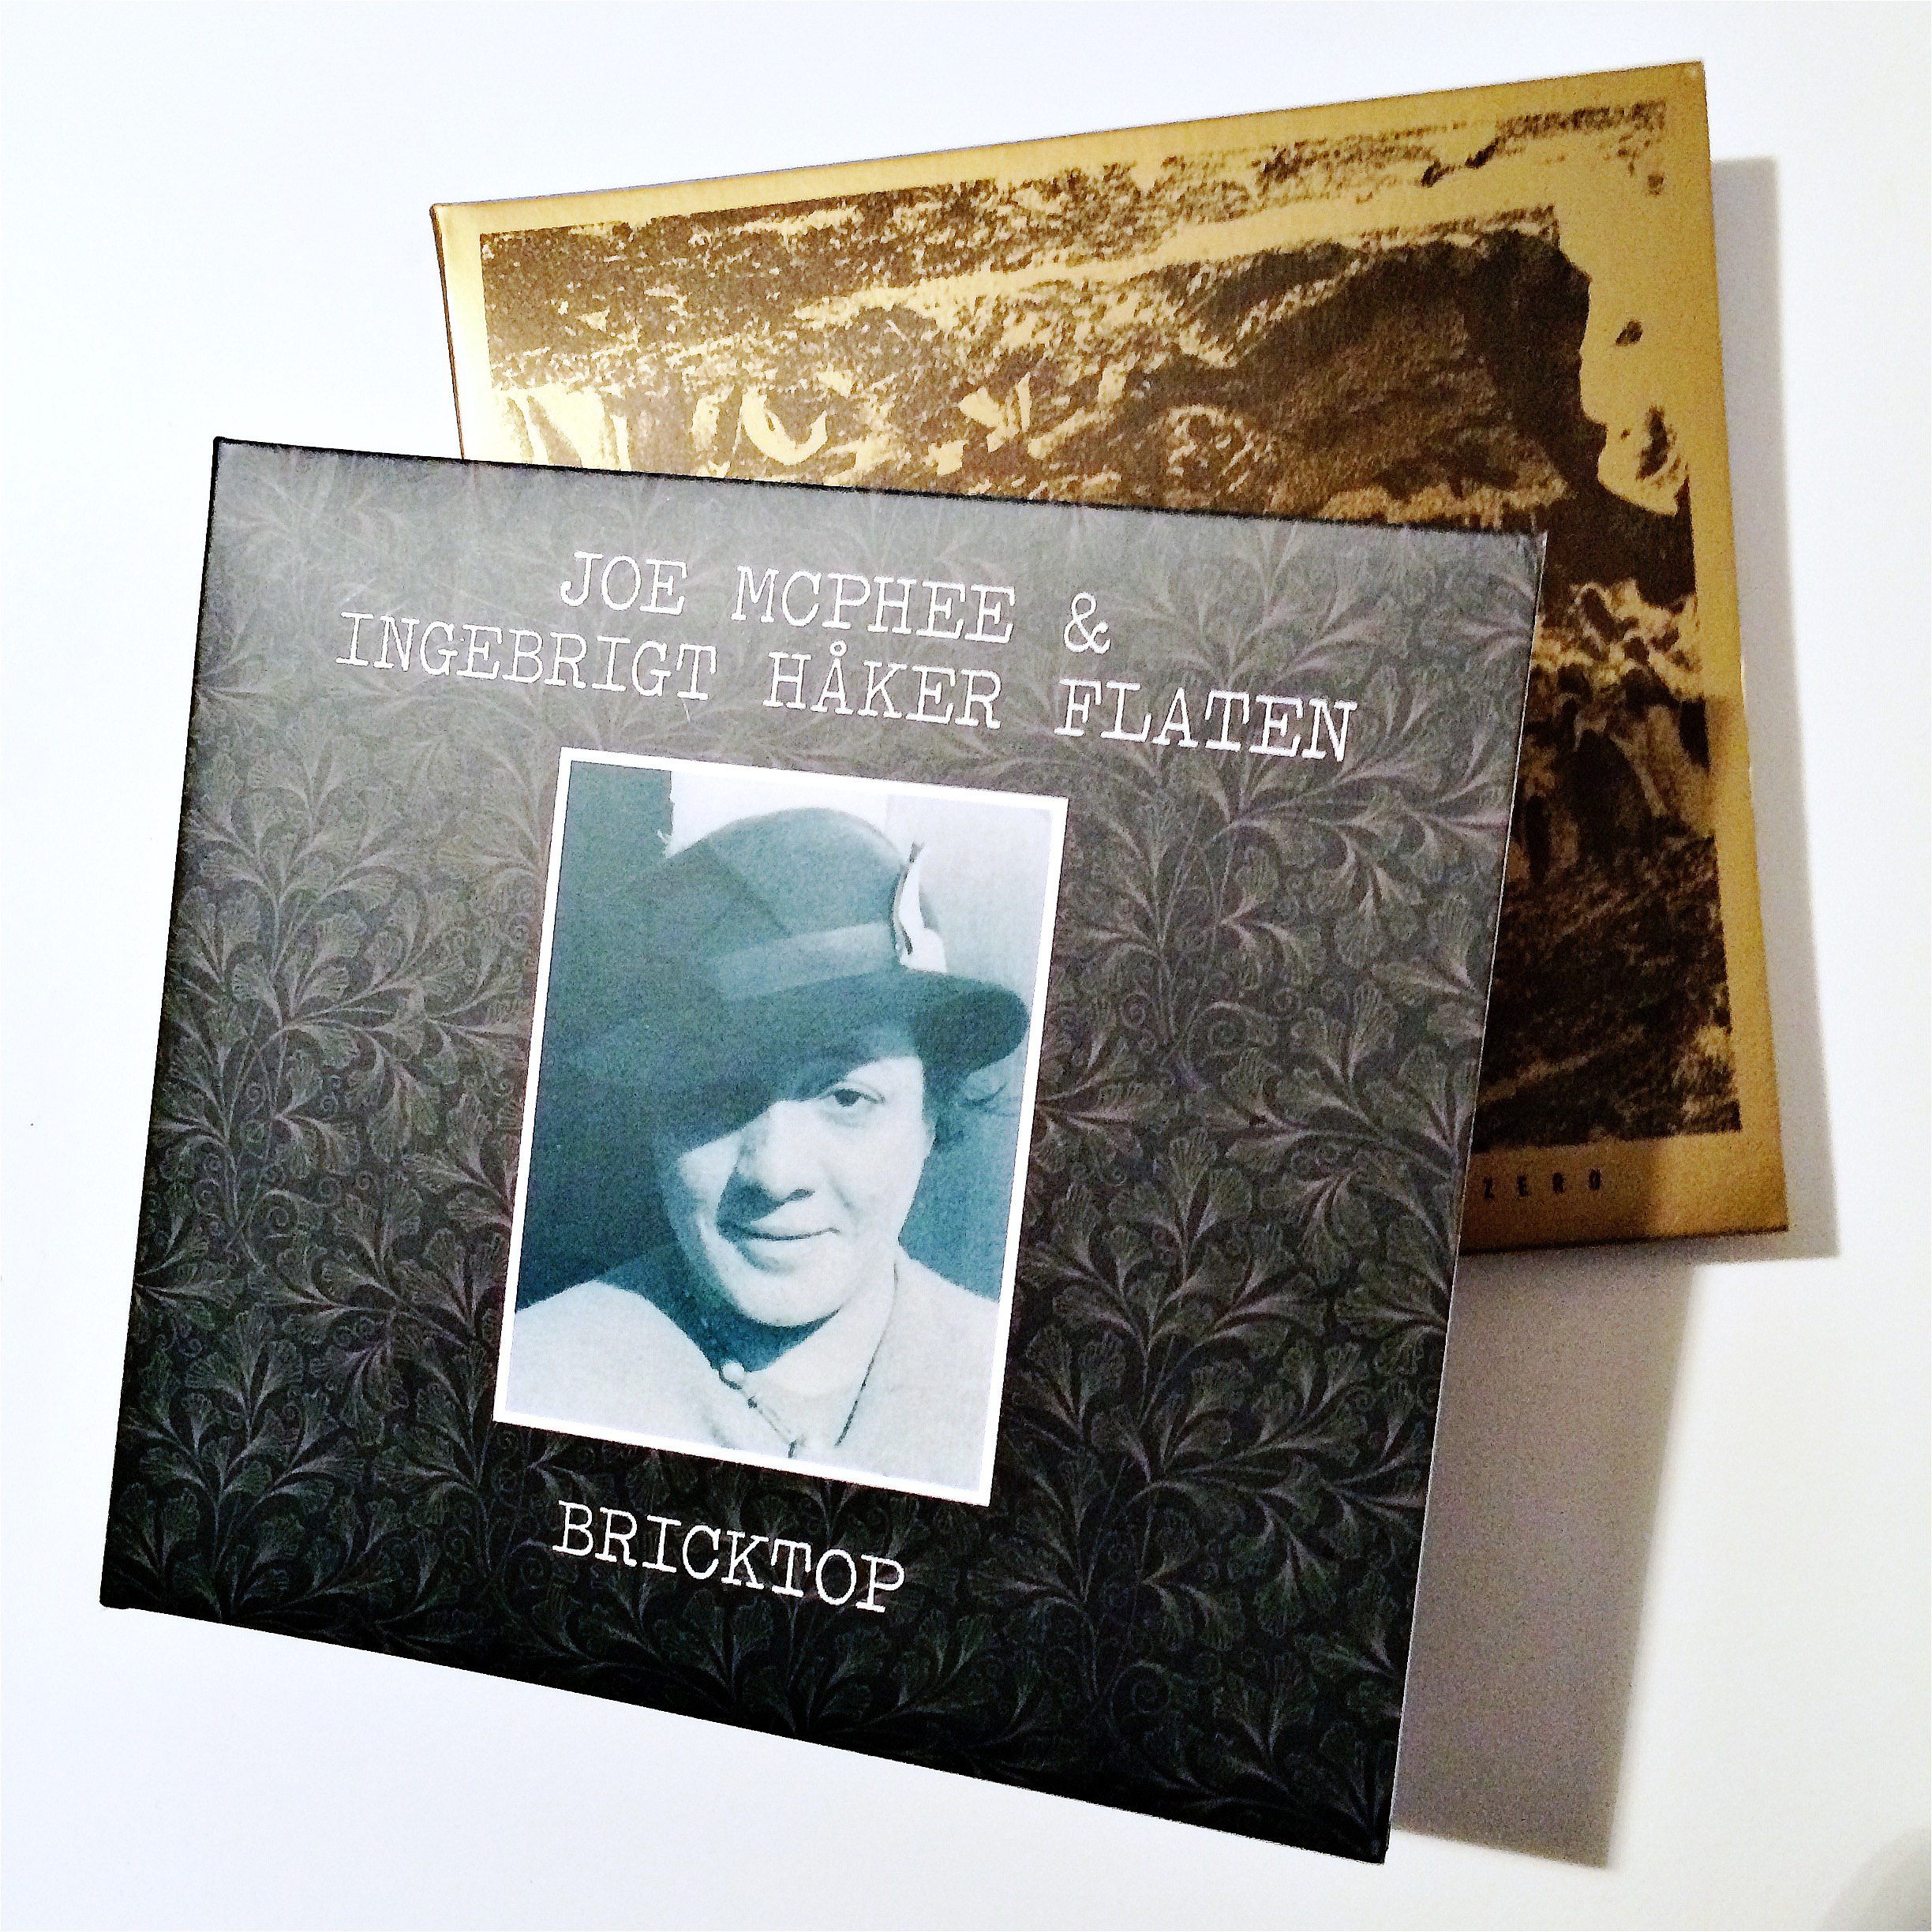 New releases at Trost Records with my photos